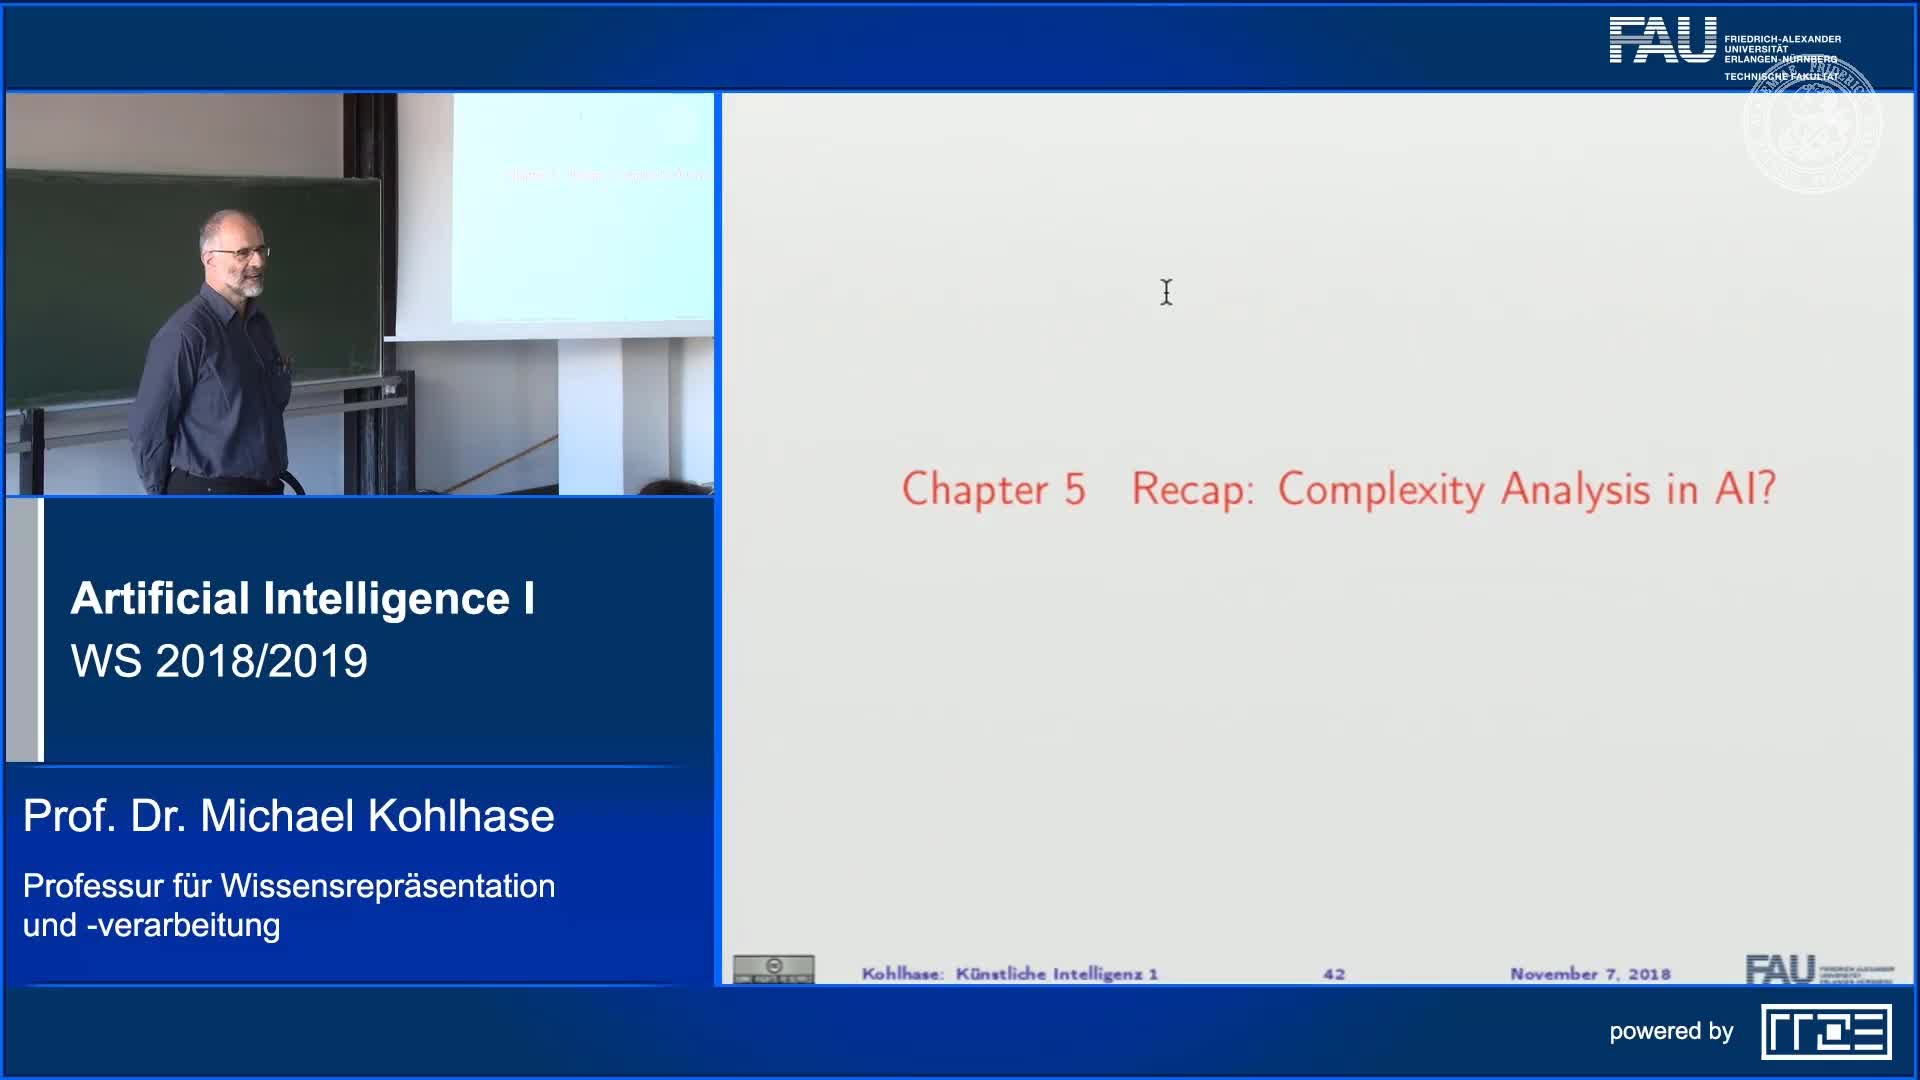 Recap: Complexity Analysis in AI (Part 1) preview image